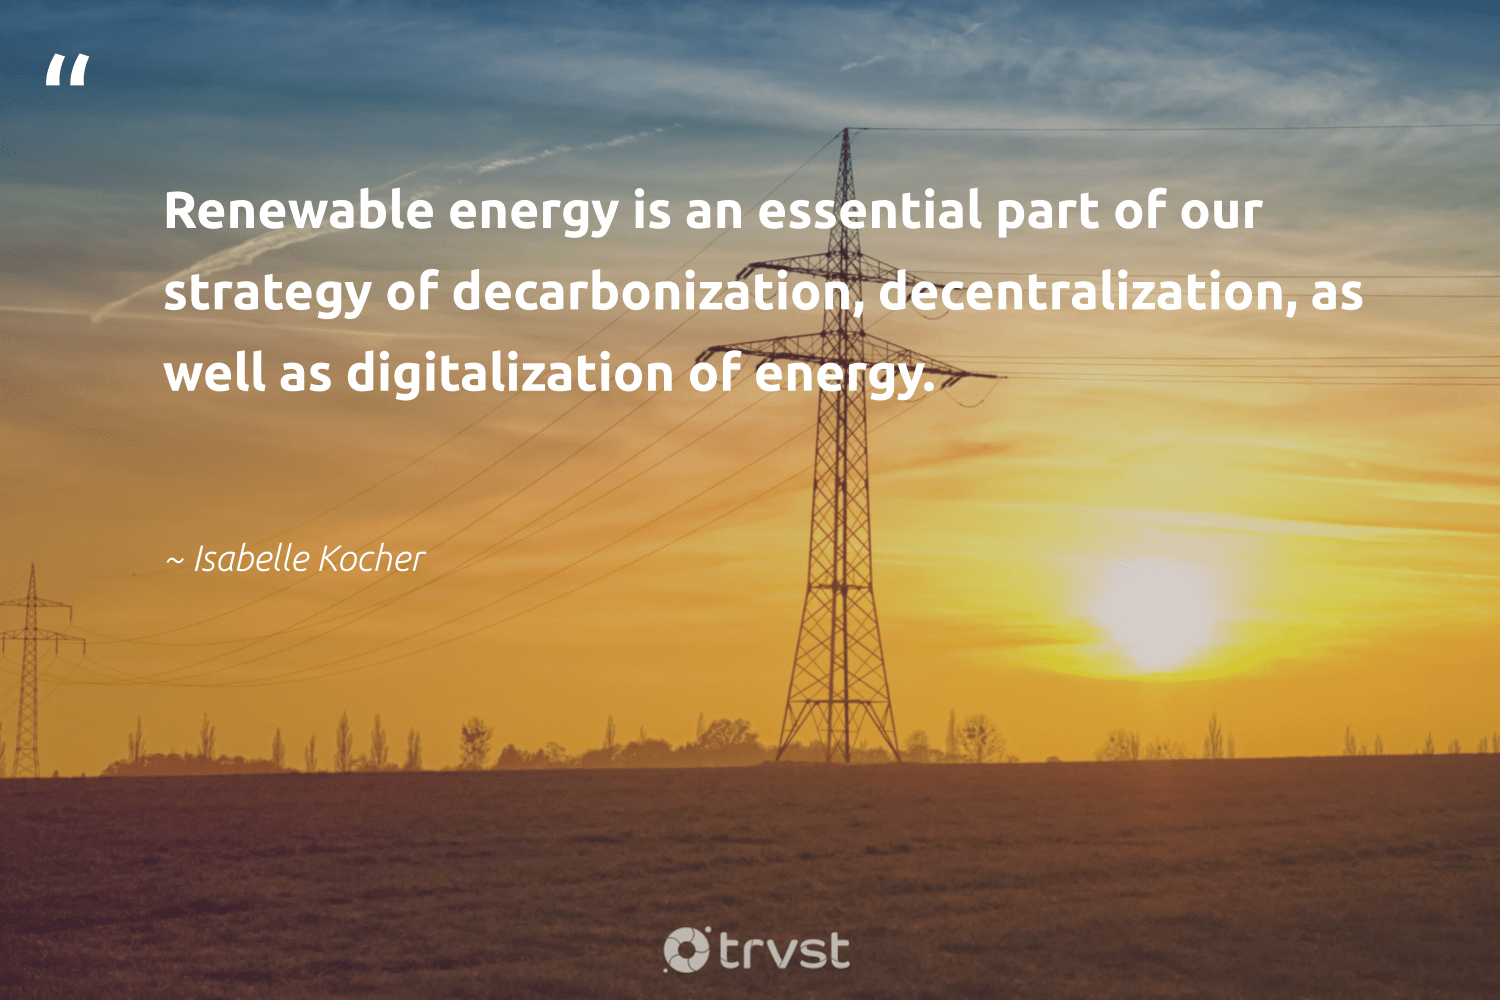 """""""Renewable energy is an essential part of our strategy of decarbonization, decentralization, as well as digitalization of energy.""""  - Isabelle Kocher #trvst #quotes #renewableenergy #energy #renewable #cleanenergy #lowcarbon #planetearth #globalwarming #socialchange #switchfuelenergy #affordable"""